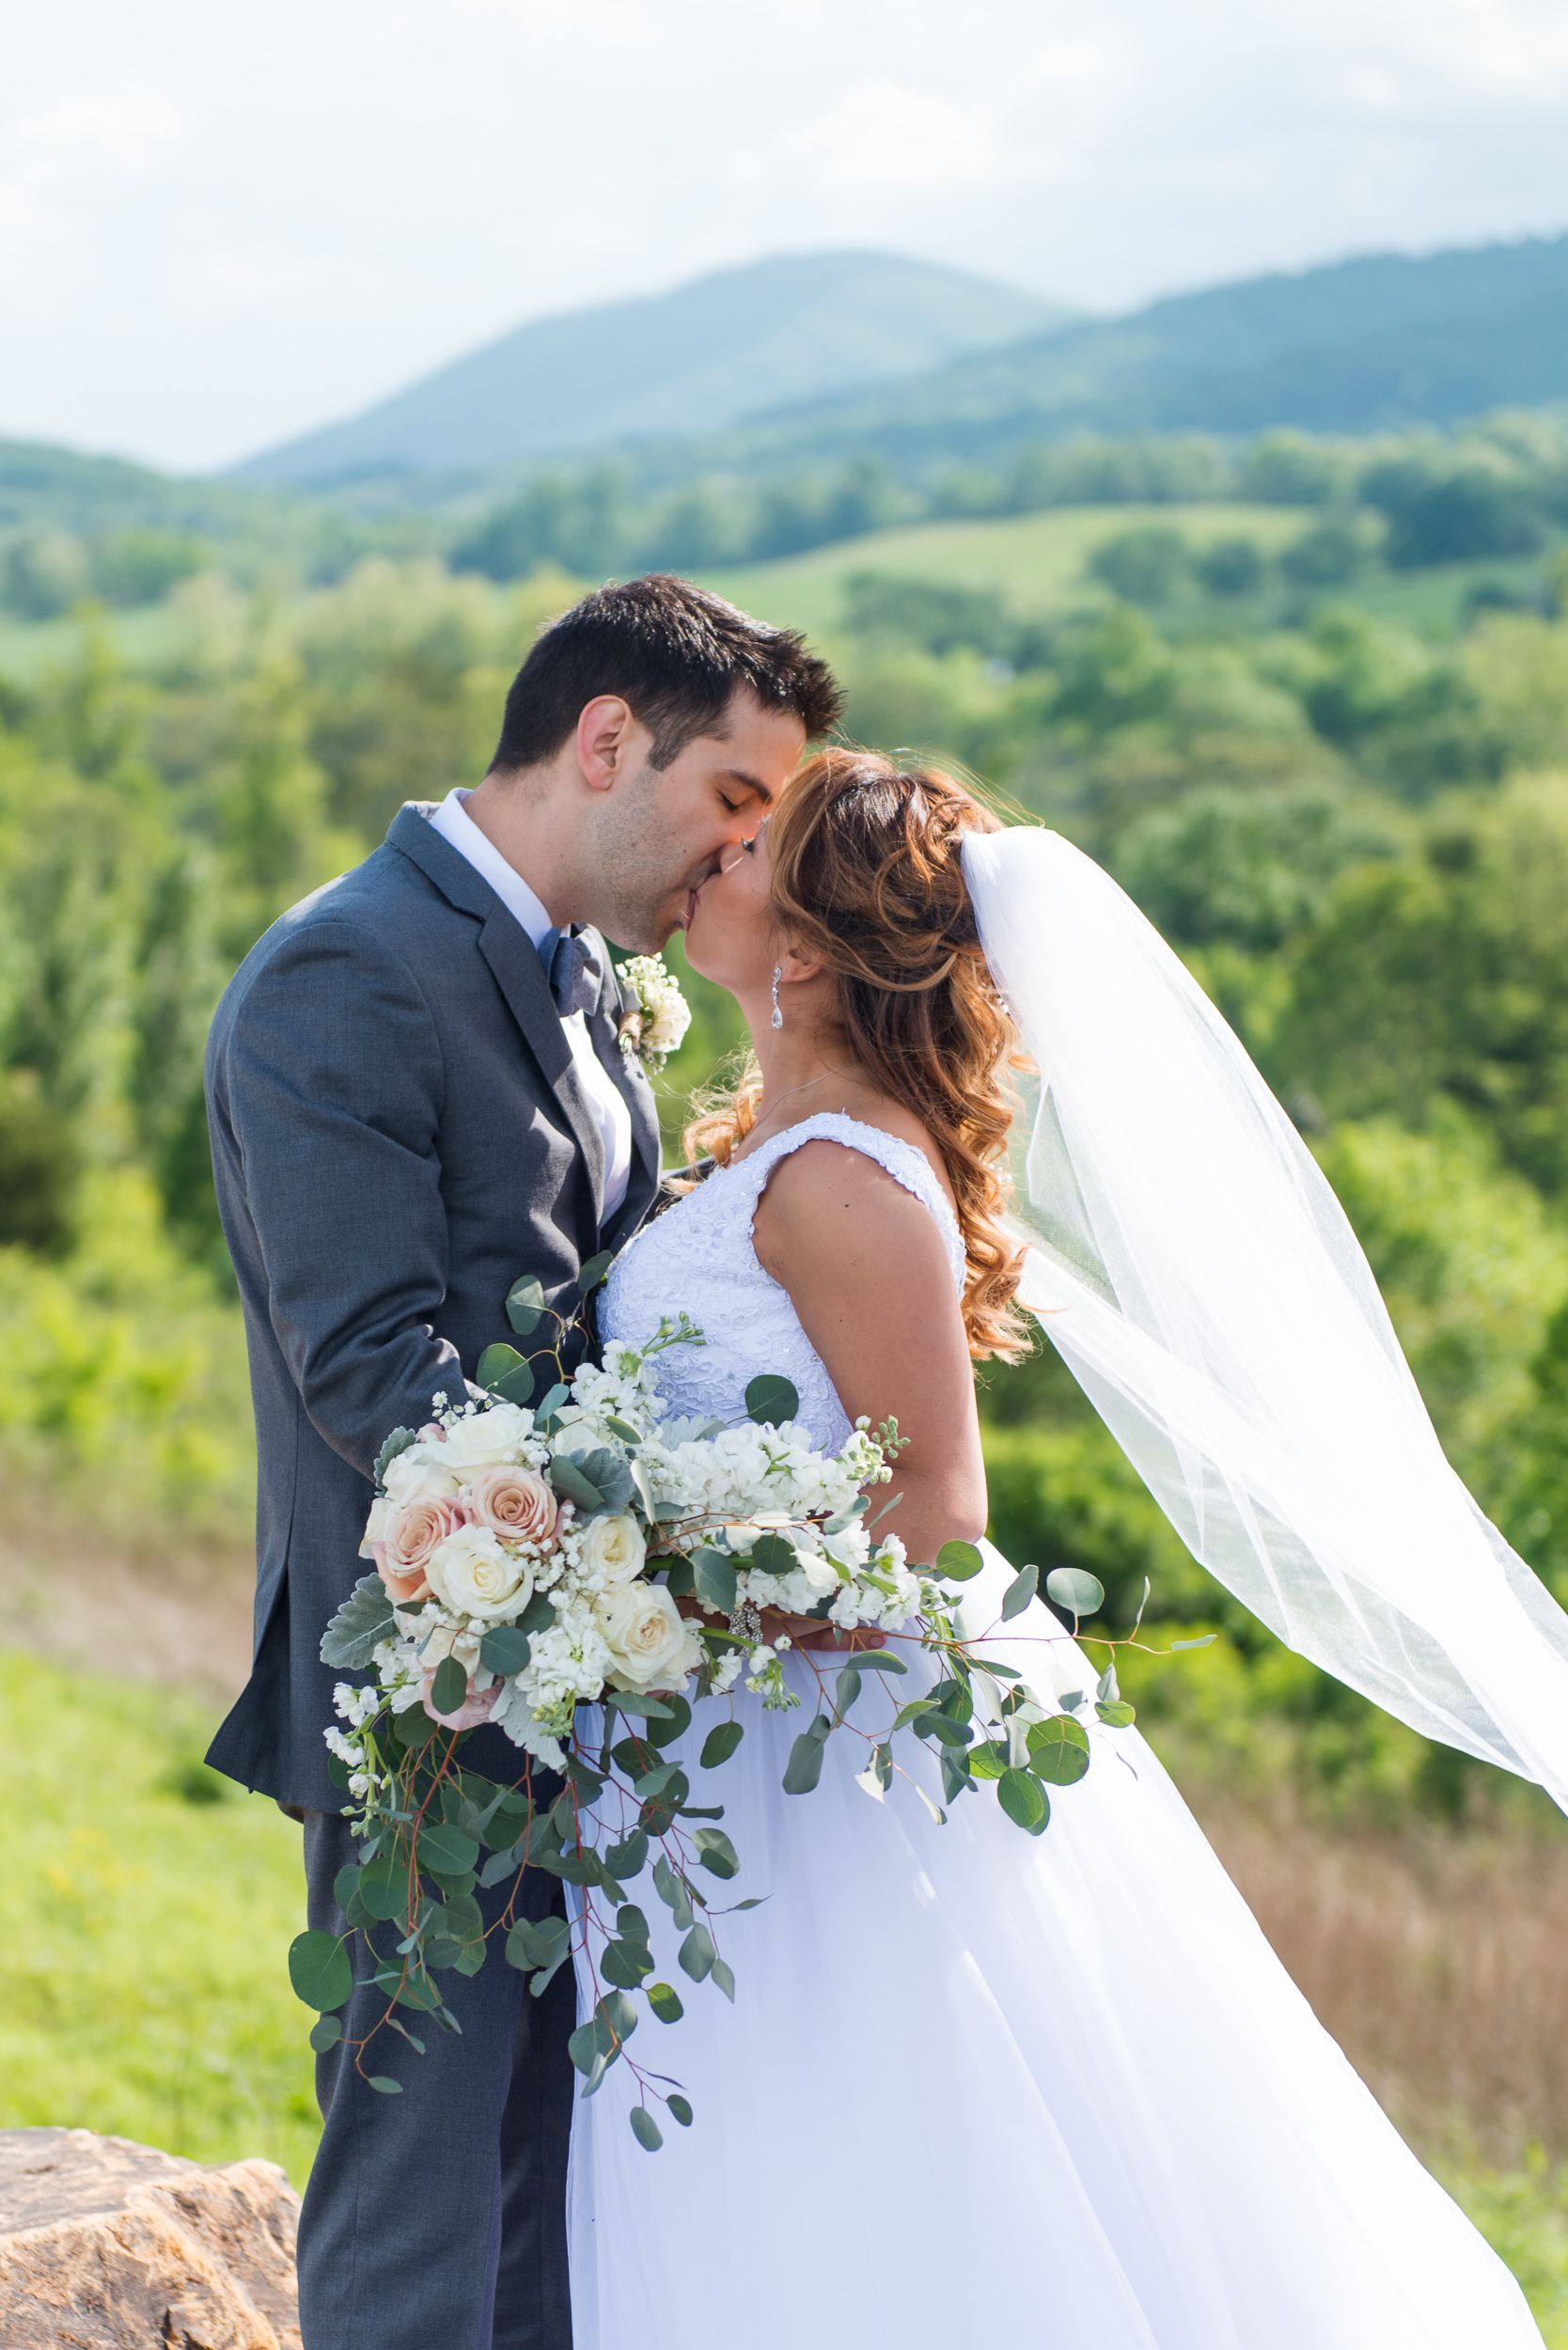 A bride and groom kiss as the bride's cathedral veil flows behind her with Blue Ridge Mountains in the background at Blue Valley Vineyard and Winery in Delaplane, Virginia